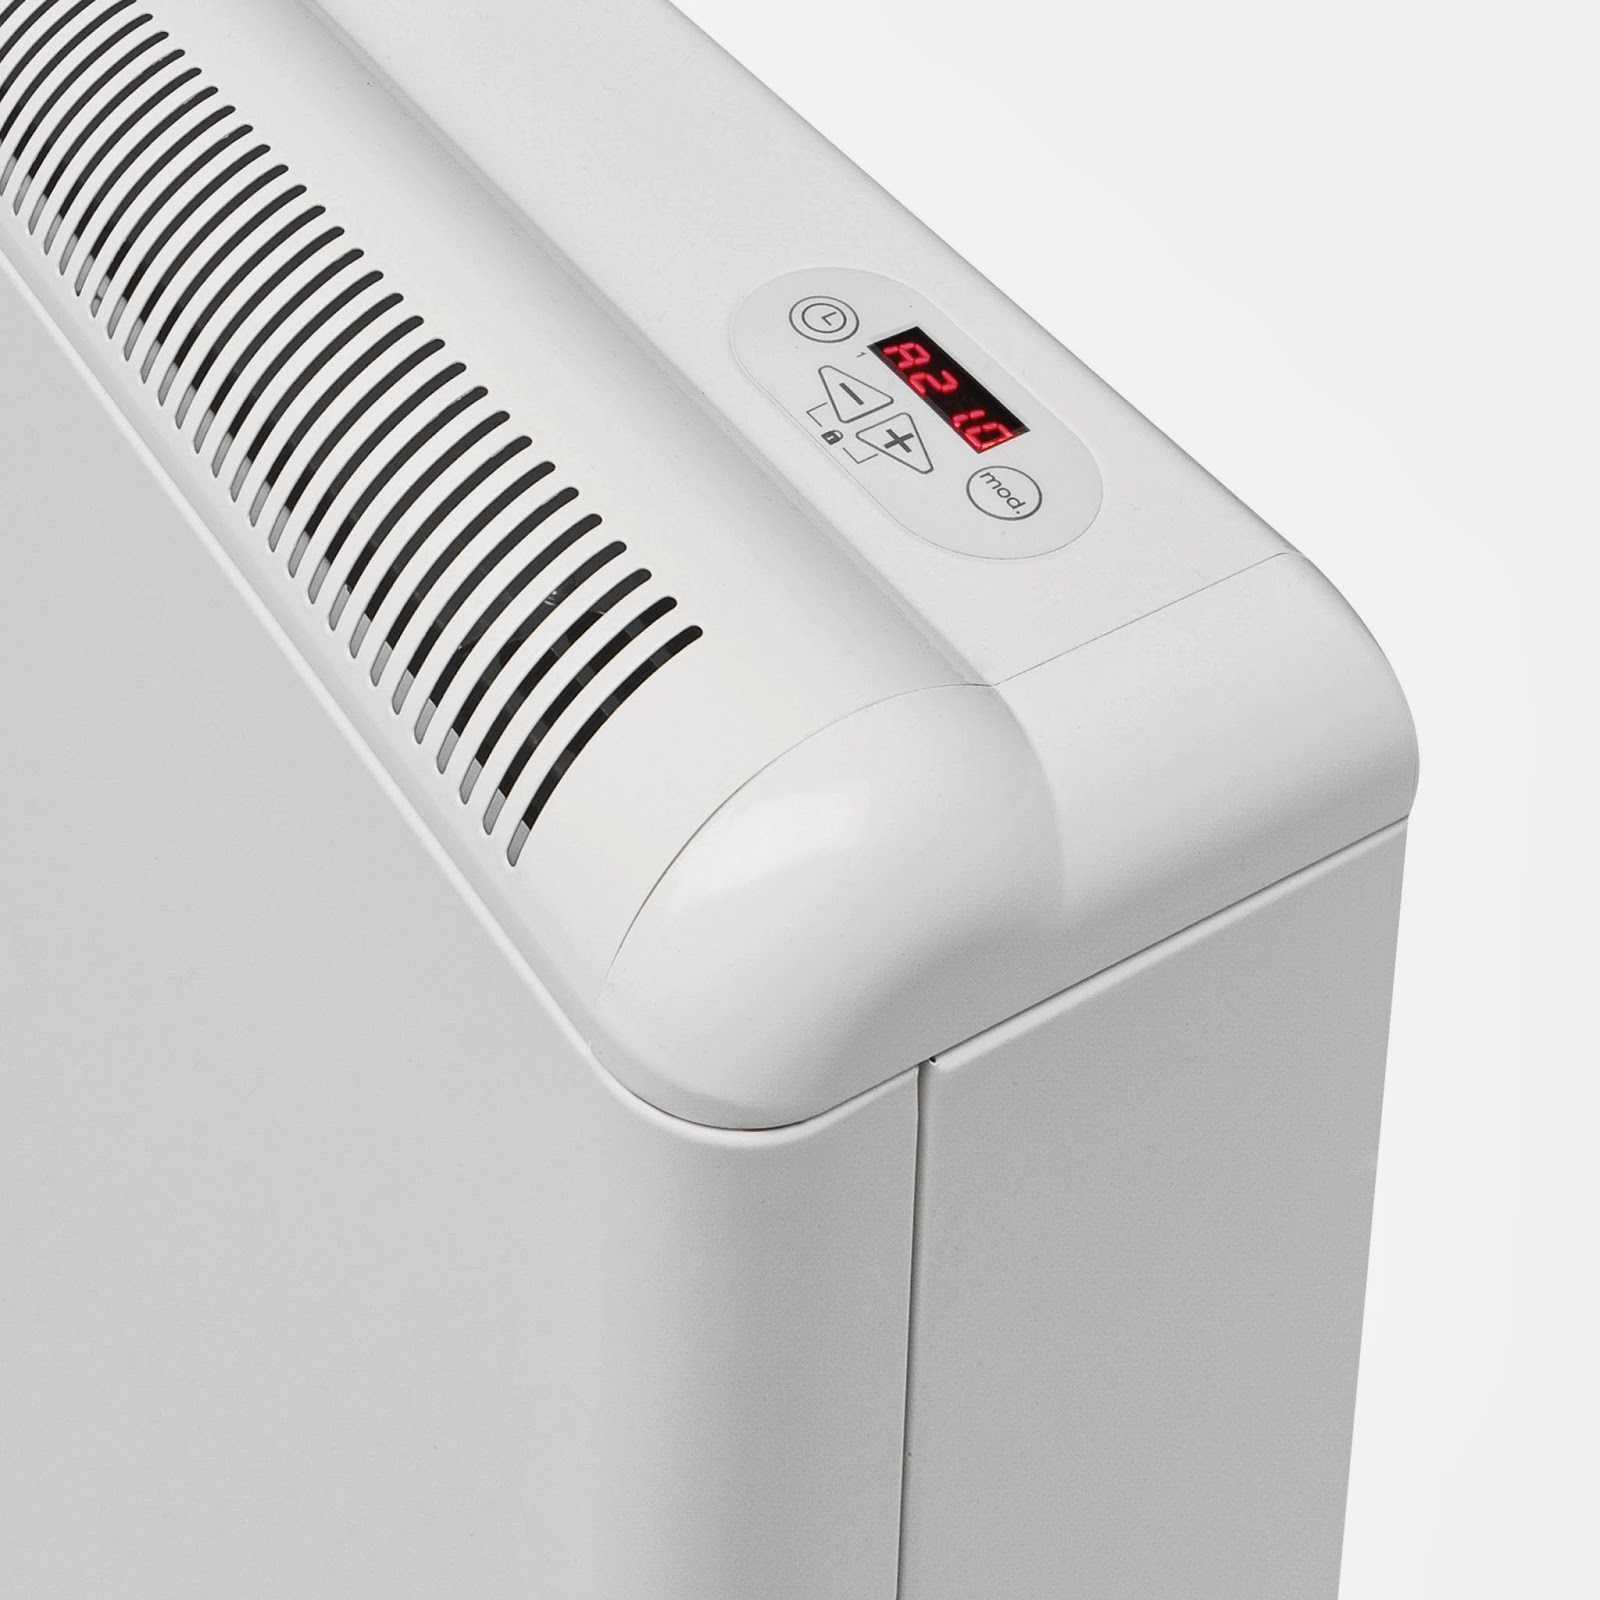 Sparks In Spain New Ecombi Smart Heaters